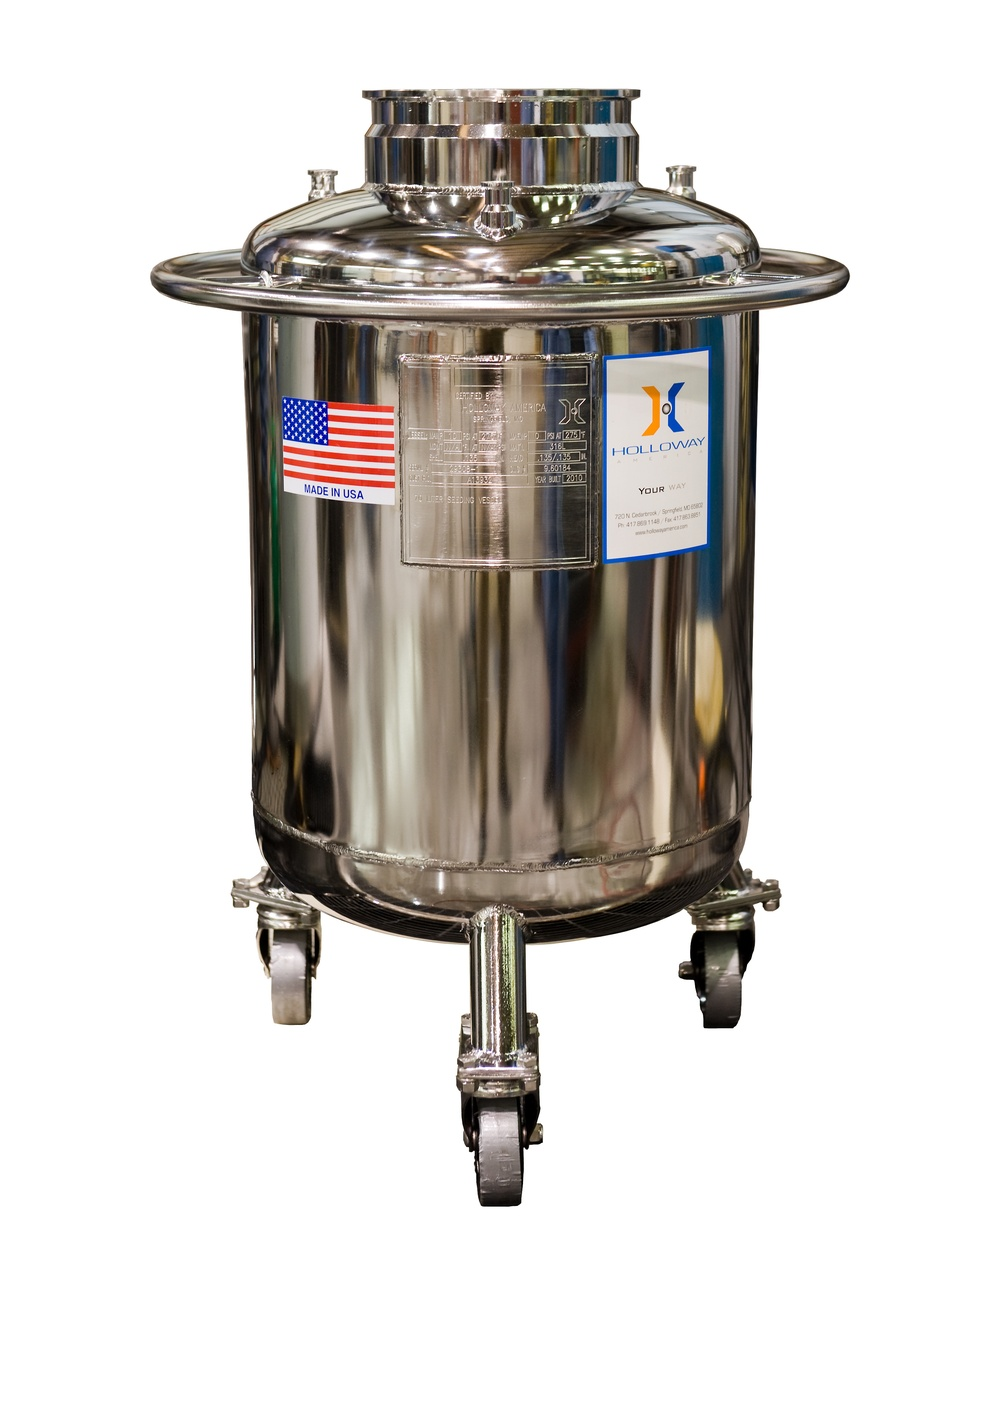 A vertical vessel, this is one of Holloway's portable pressure vessels for the laboratory.